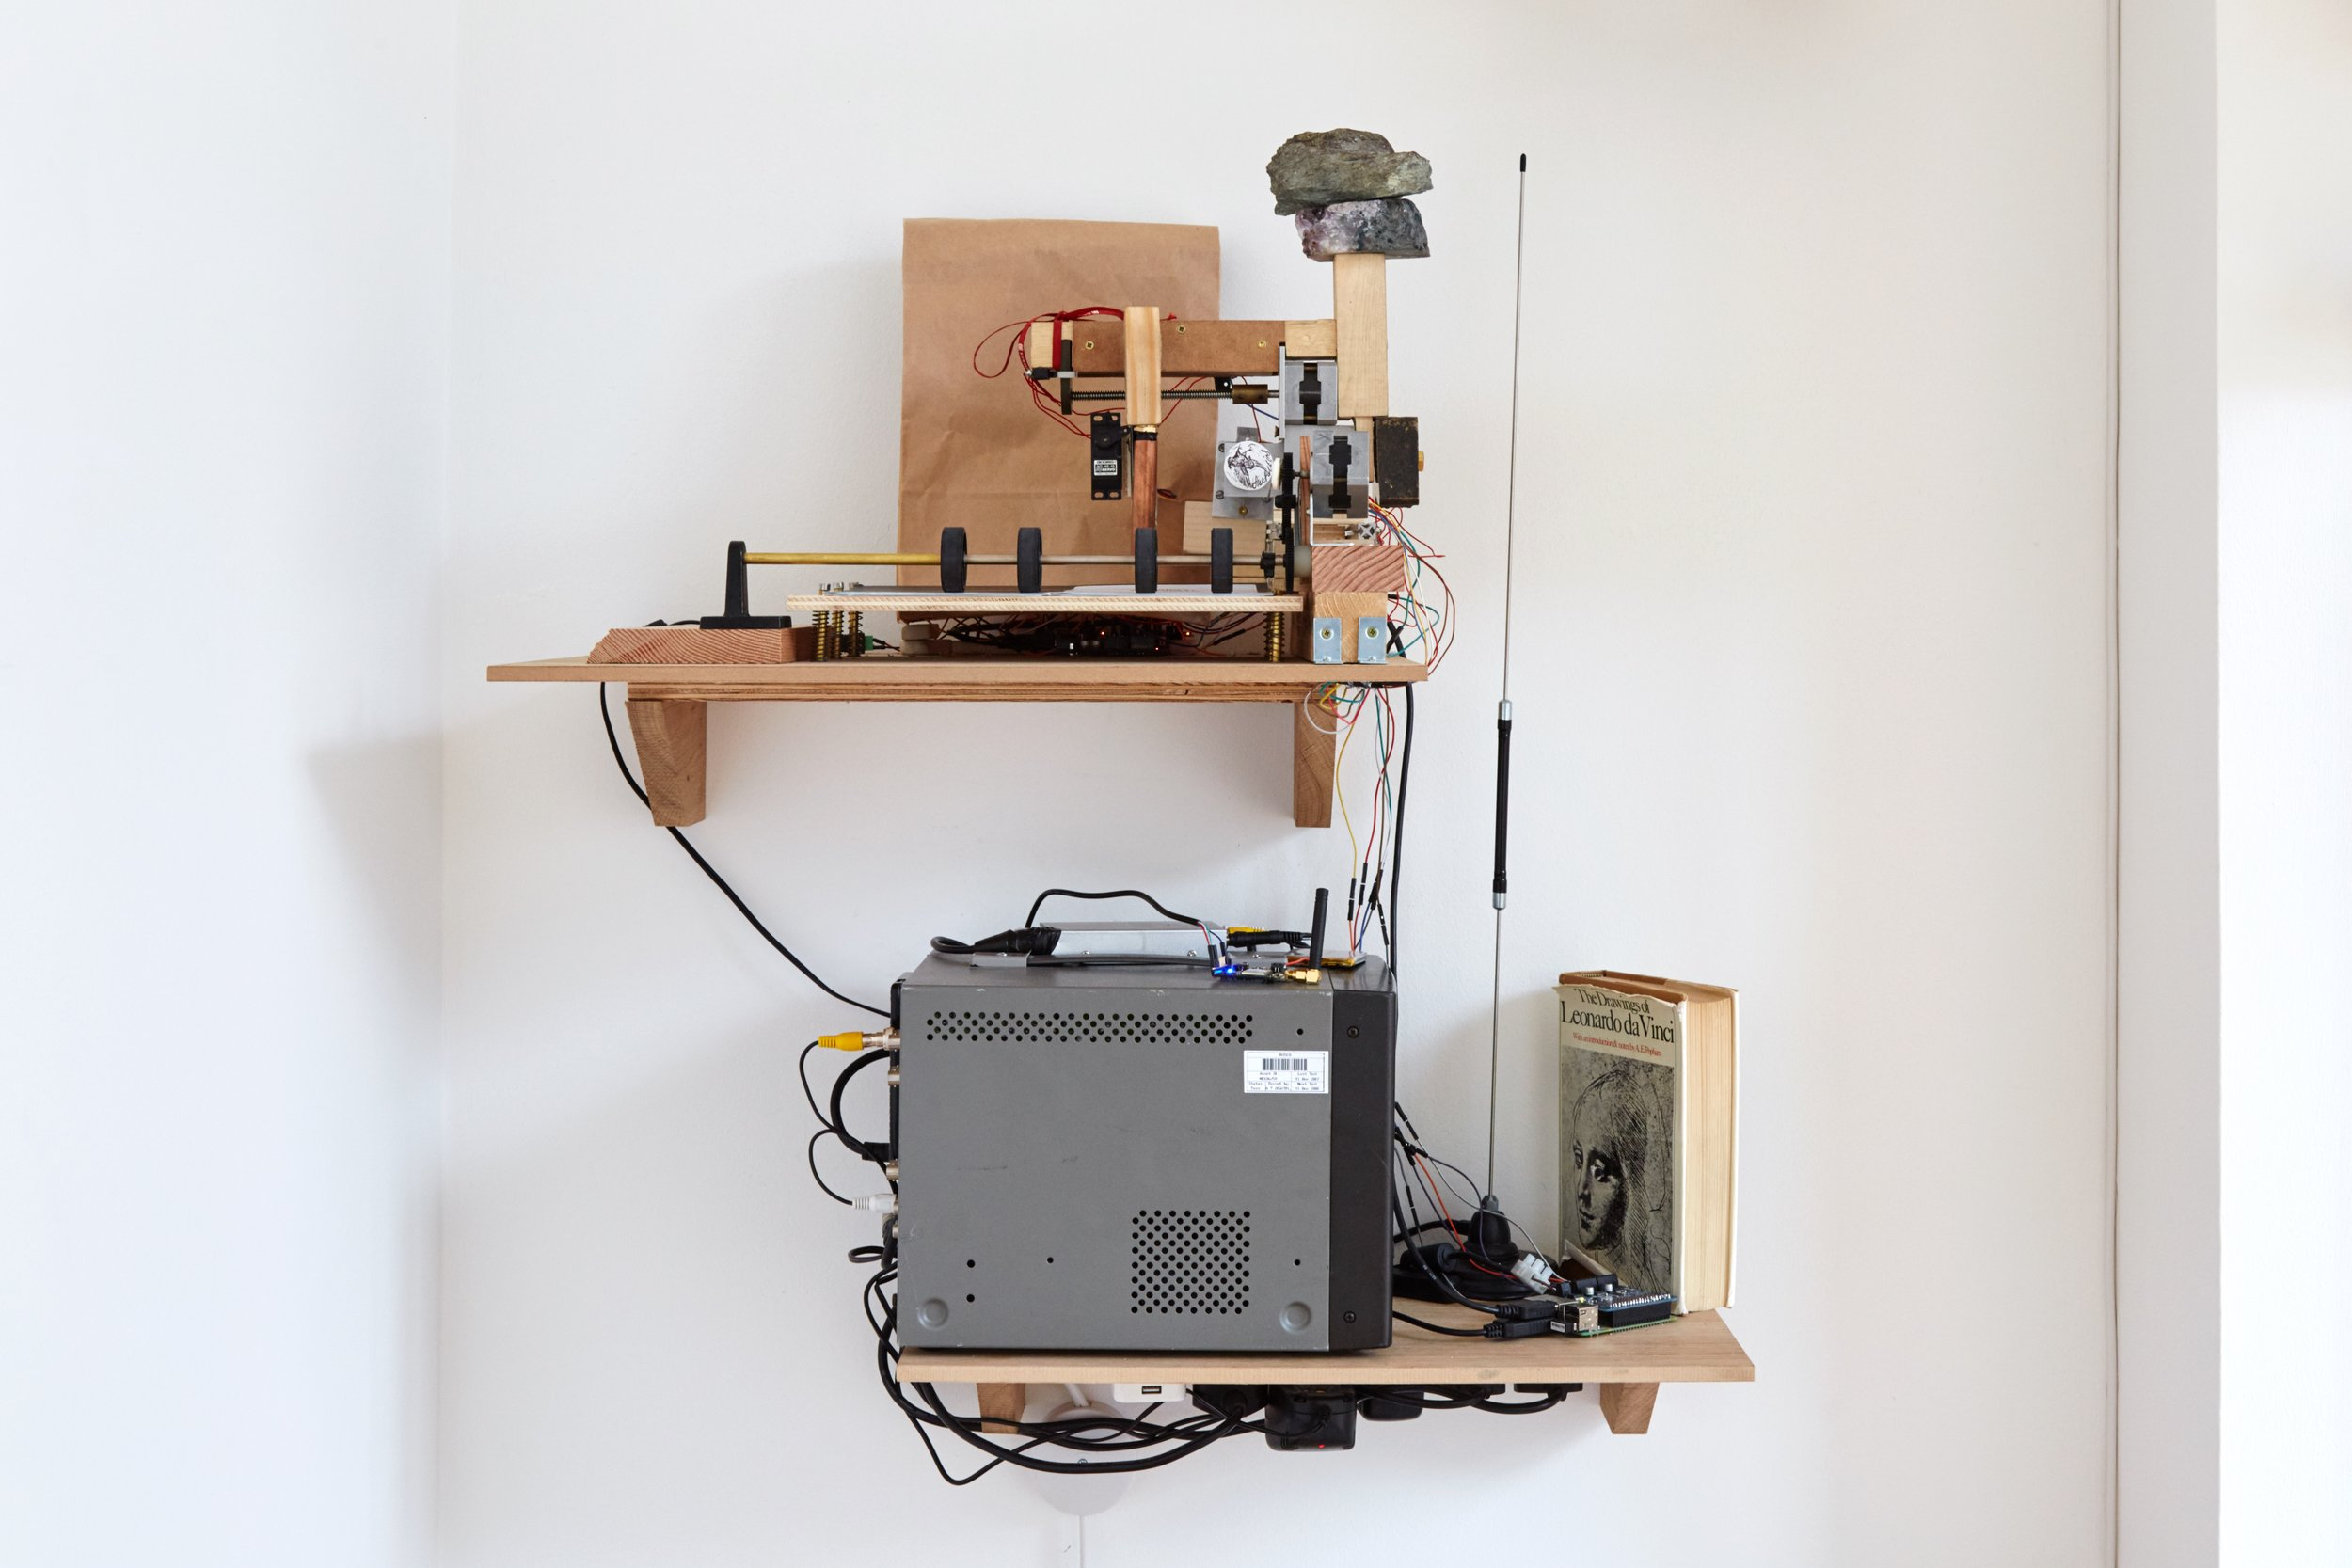 Congratulations  恭喜你 ,  2019 Cherry, Douglas Fir, Plywood, Oak Veneered MDF and MDF, with Motors, Ribbon, CRT Monitor,  The Drawings of Leonardo Da Vinci  (Hardback), Radio Aerial, Arduino's, Raspberry Pi, Signal Receiver, Sim Card, Various Fixings, Bronze, Rock and Amethyst, Pen on Paper, Gel Pens, Copper and Aluminium Parts, Greetings Cards,  Love Hearts  Sweet, Various Fixings, Clamp, Elastic Band, Plastic Wheels, Cast Metal and Electronic Components 90 x 75 x 42 cm